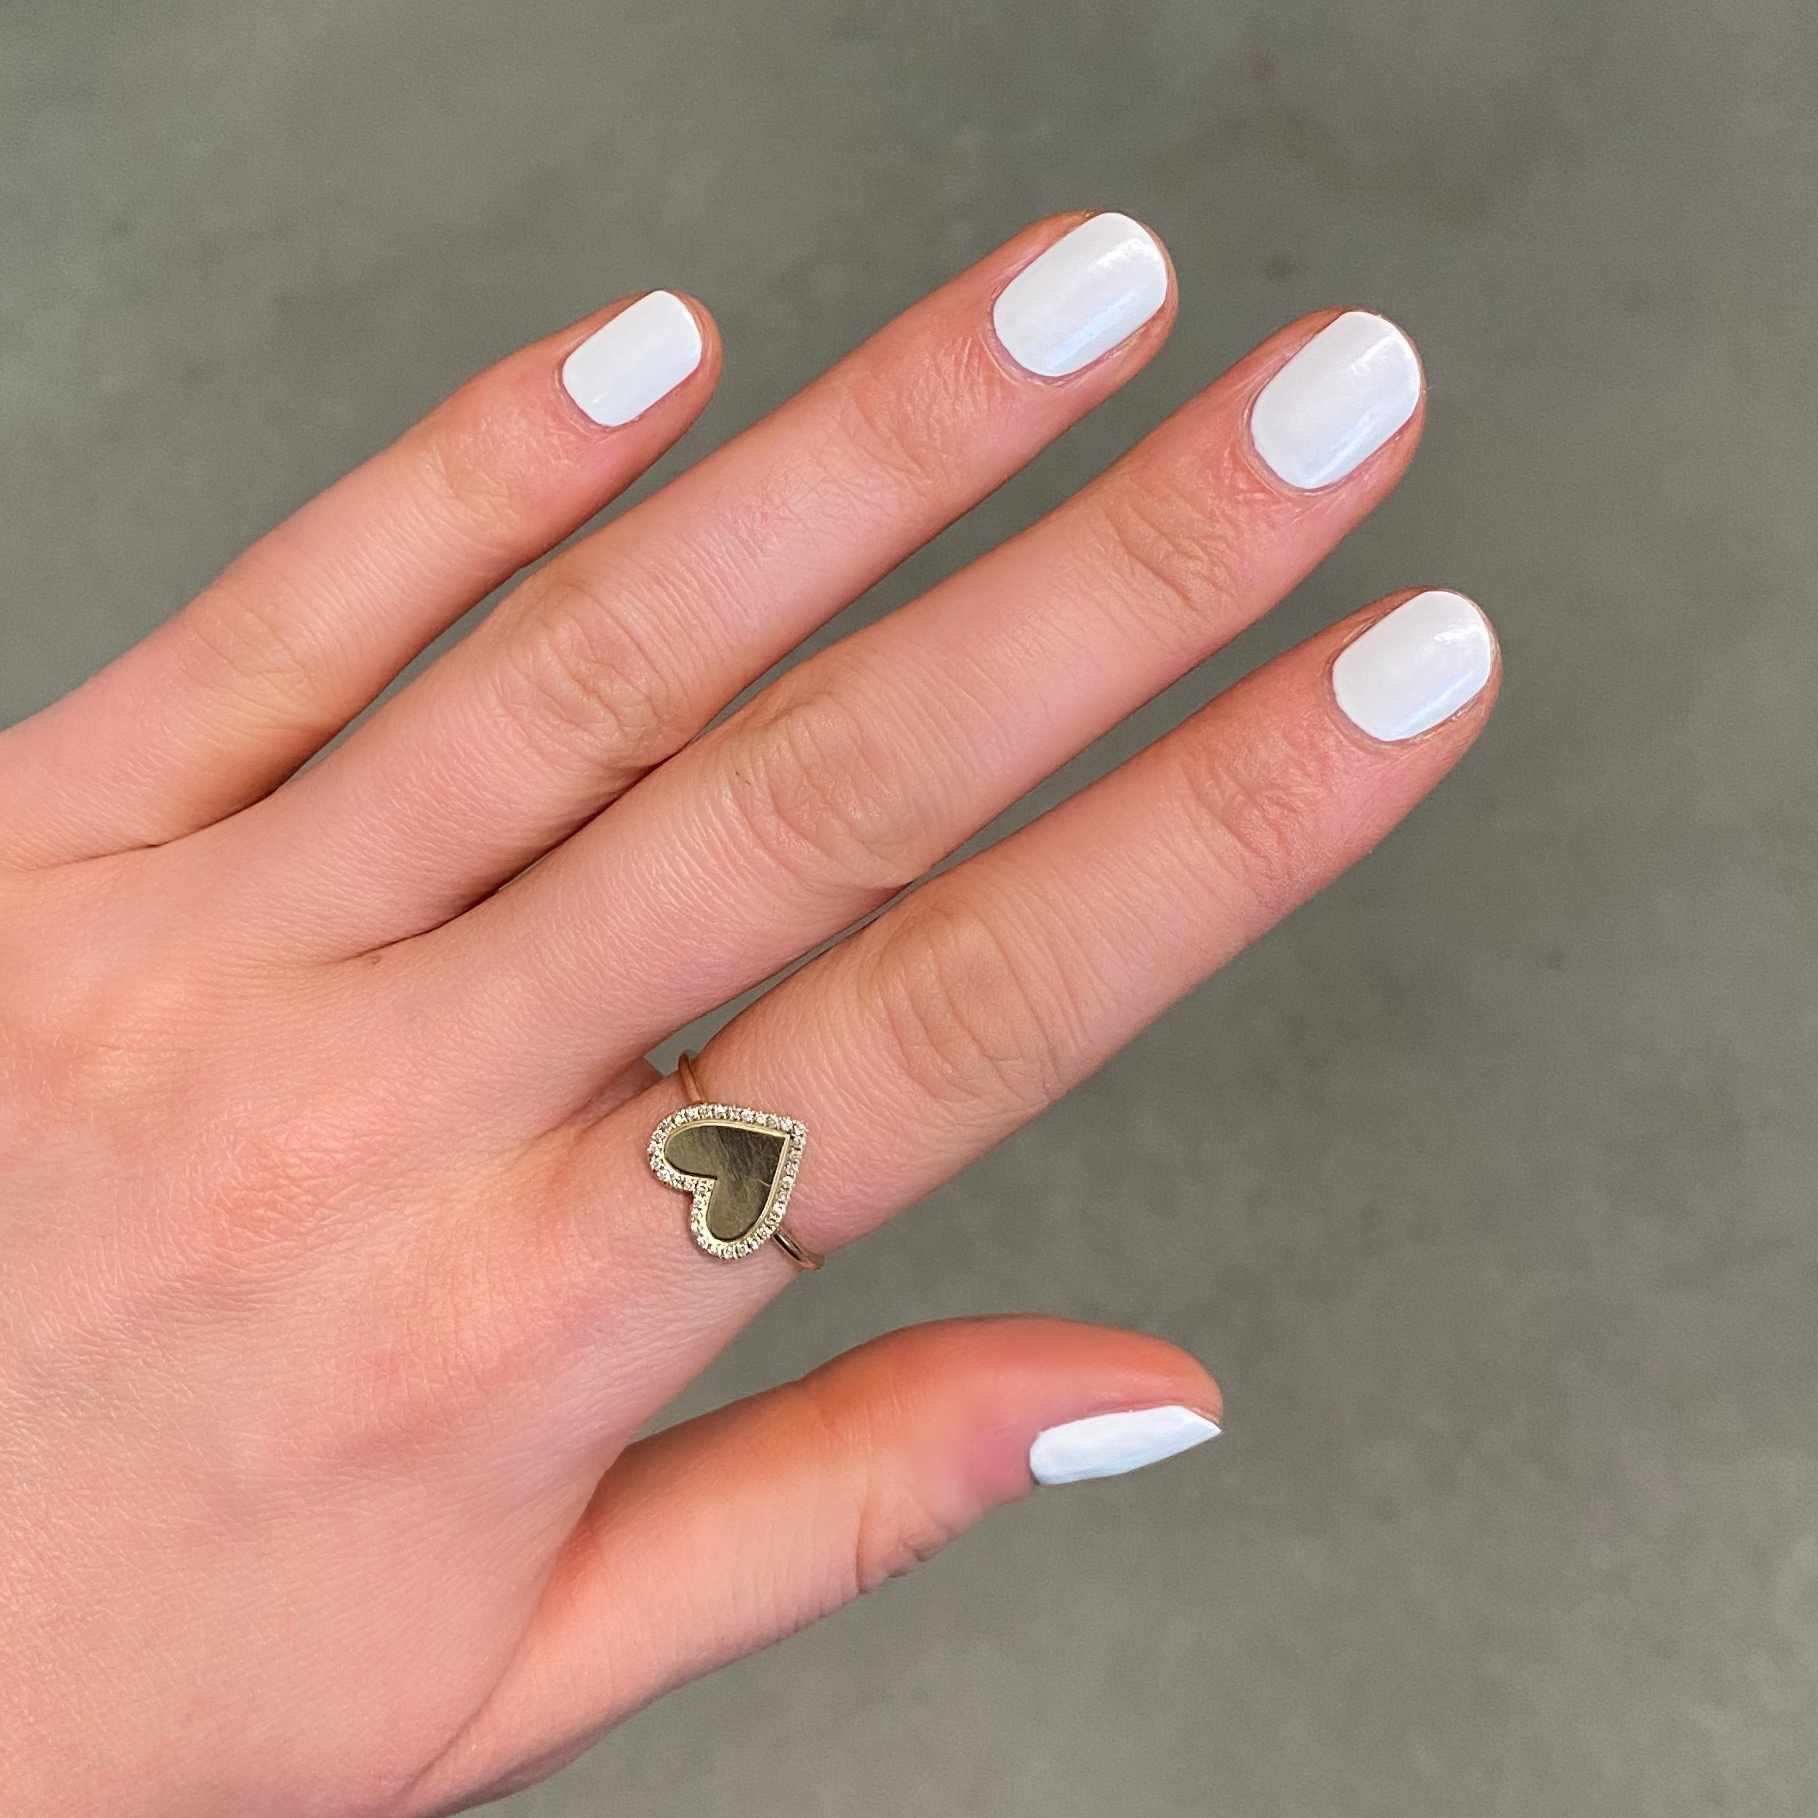 Hand with plain white nails and a heart ring.